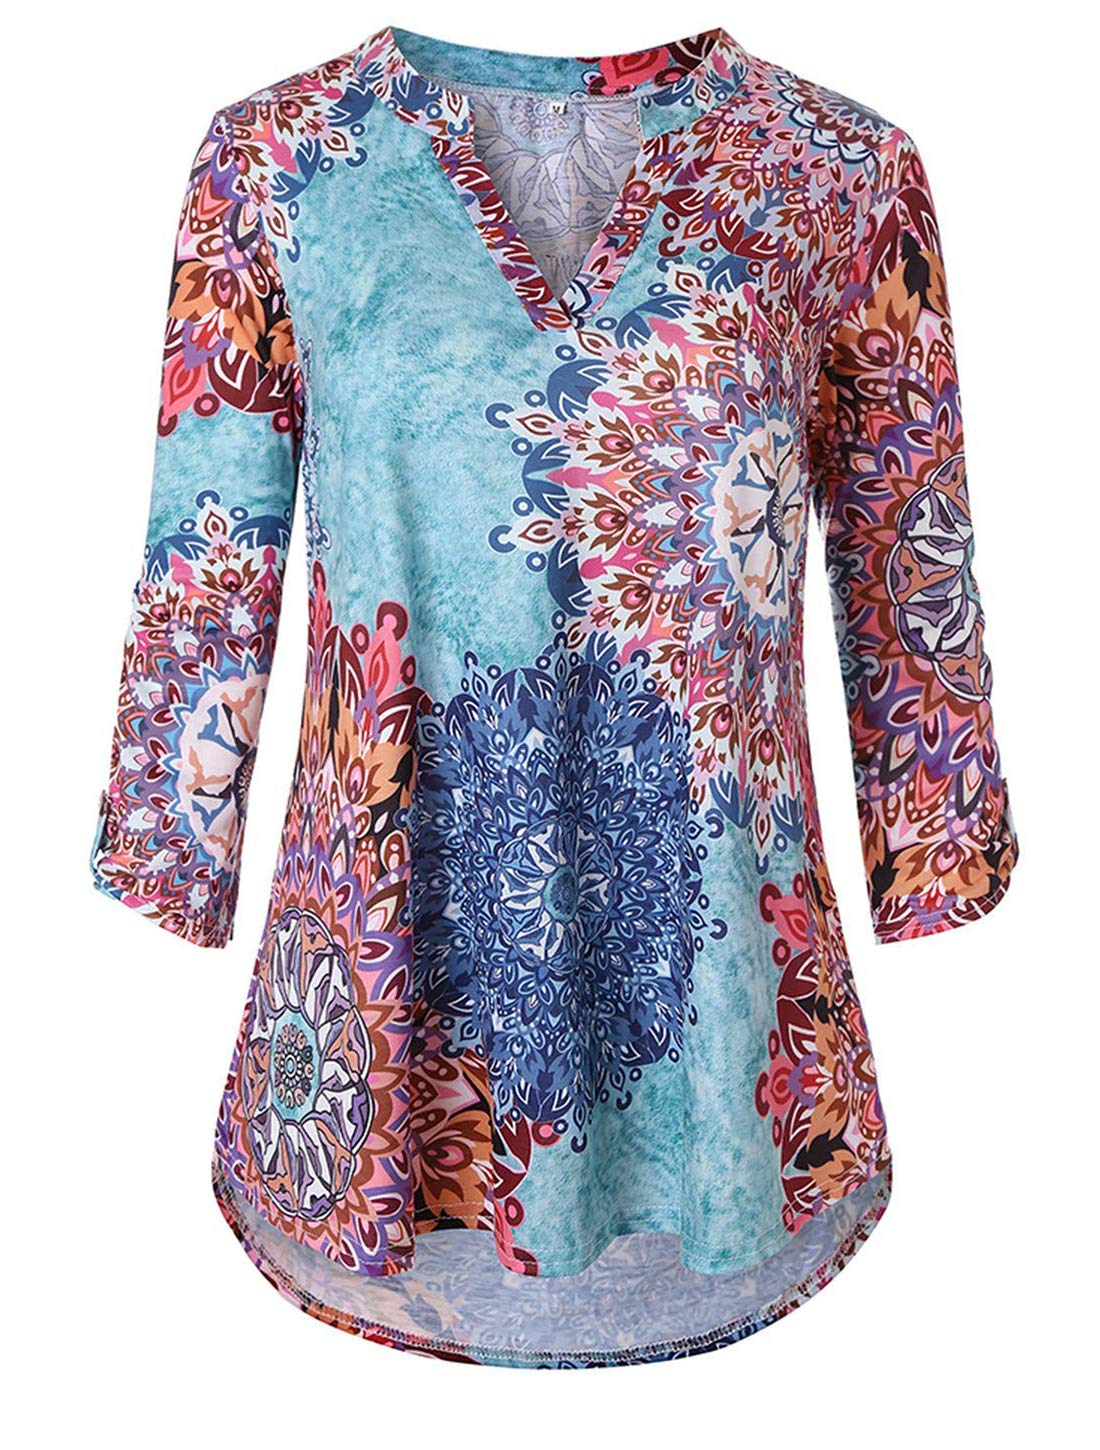 Cucuchy Tunic Shirts For Women Ladies Zulily Tunics 3 4 Sleeve Tops